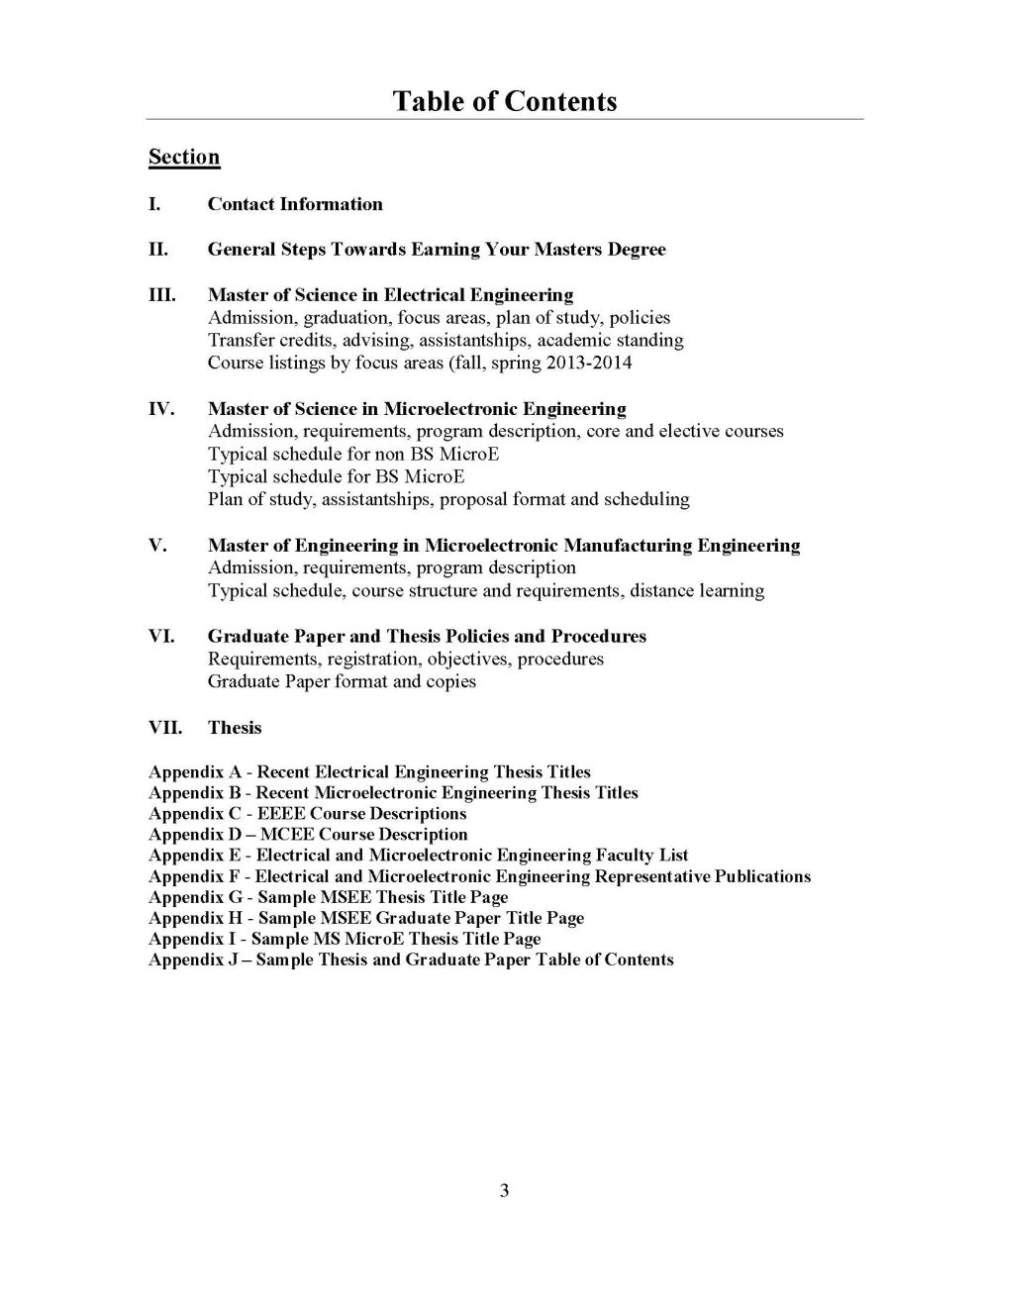 Thesis Topics | List Of PhD & Masters Thesis Topics